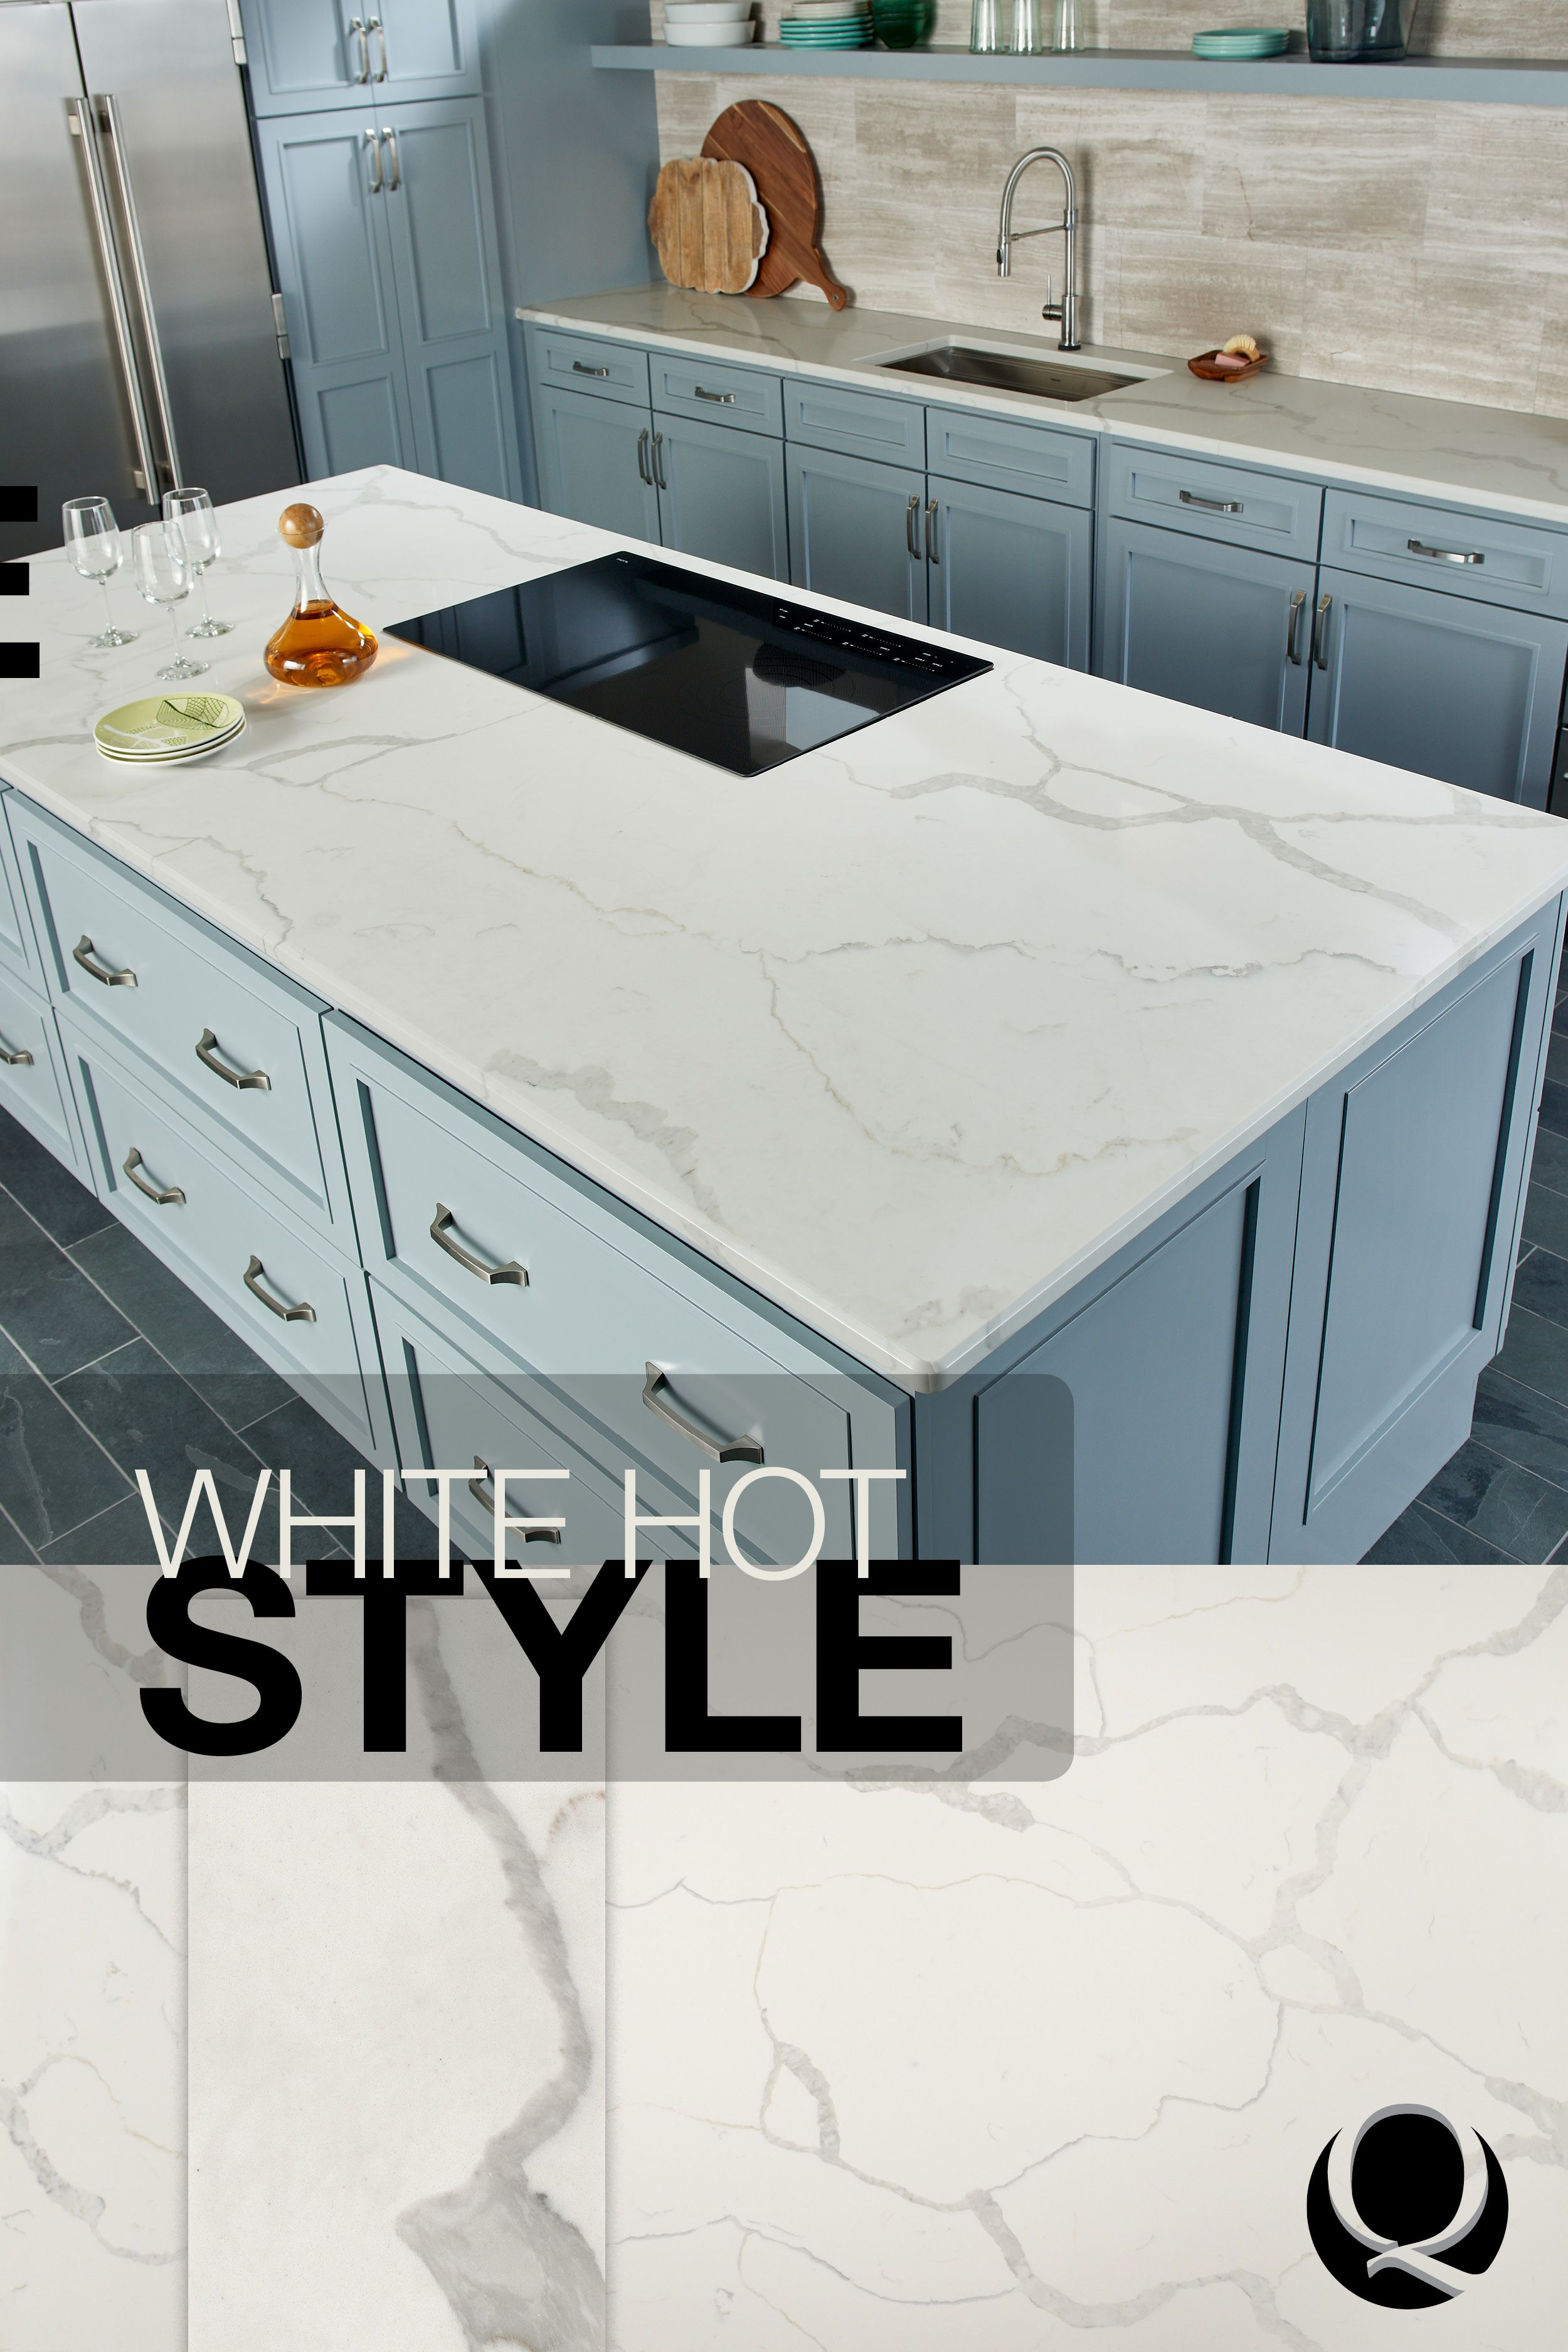 Dreamy White Countertops Are All The Rage Beloved By Homeowners